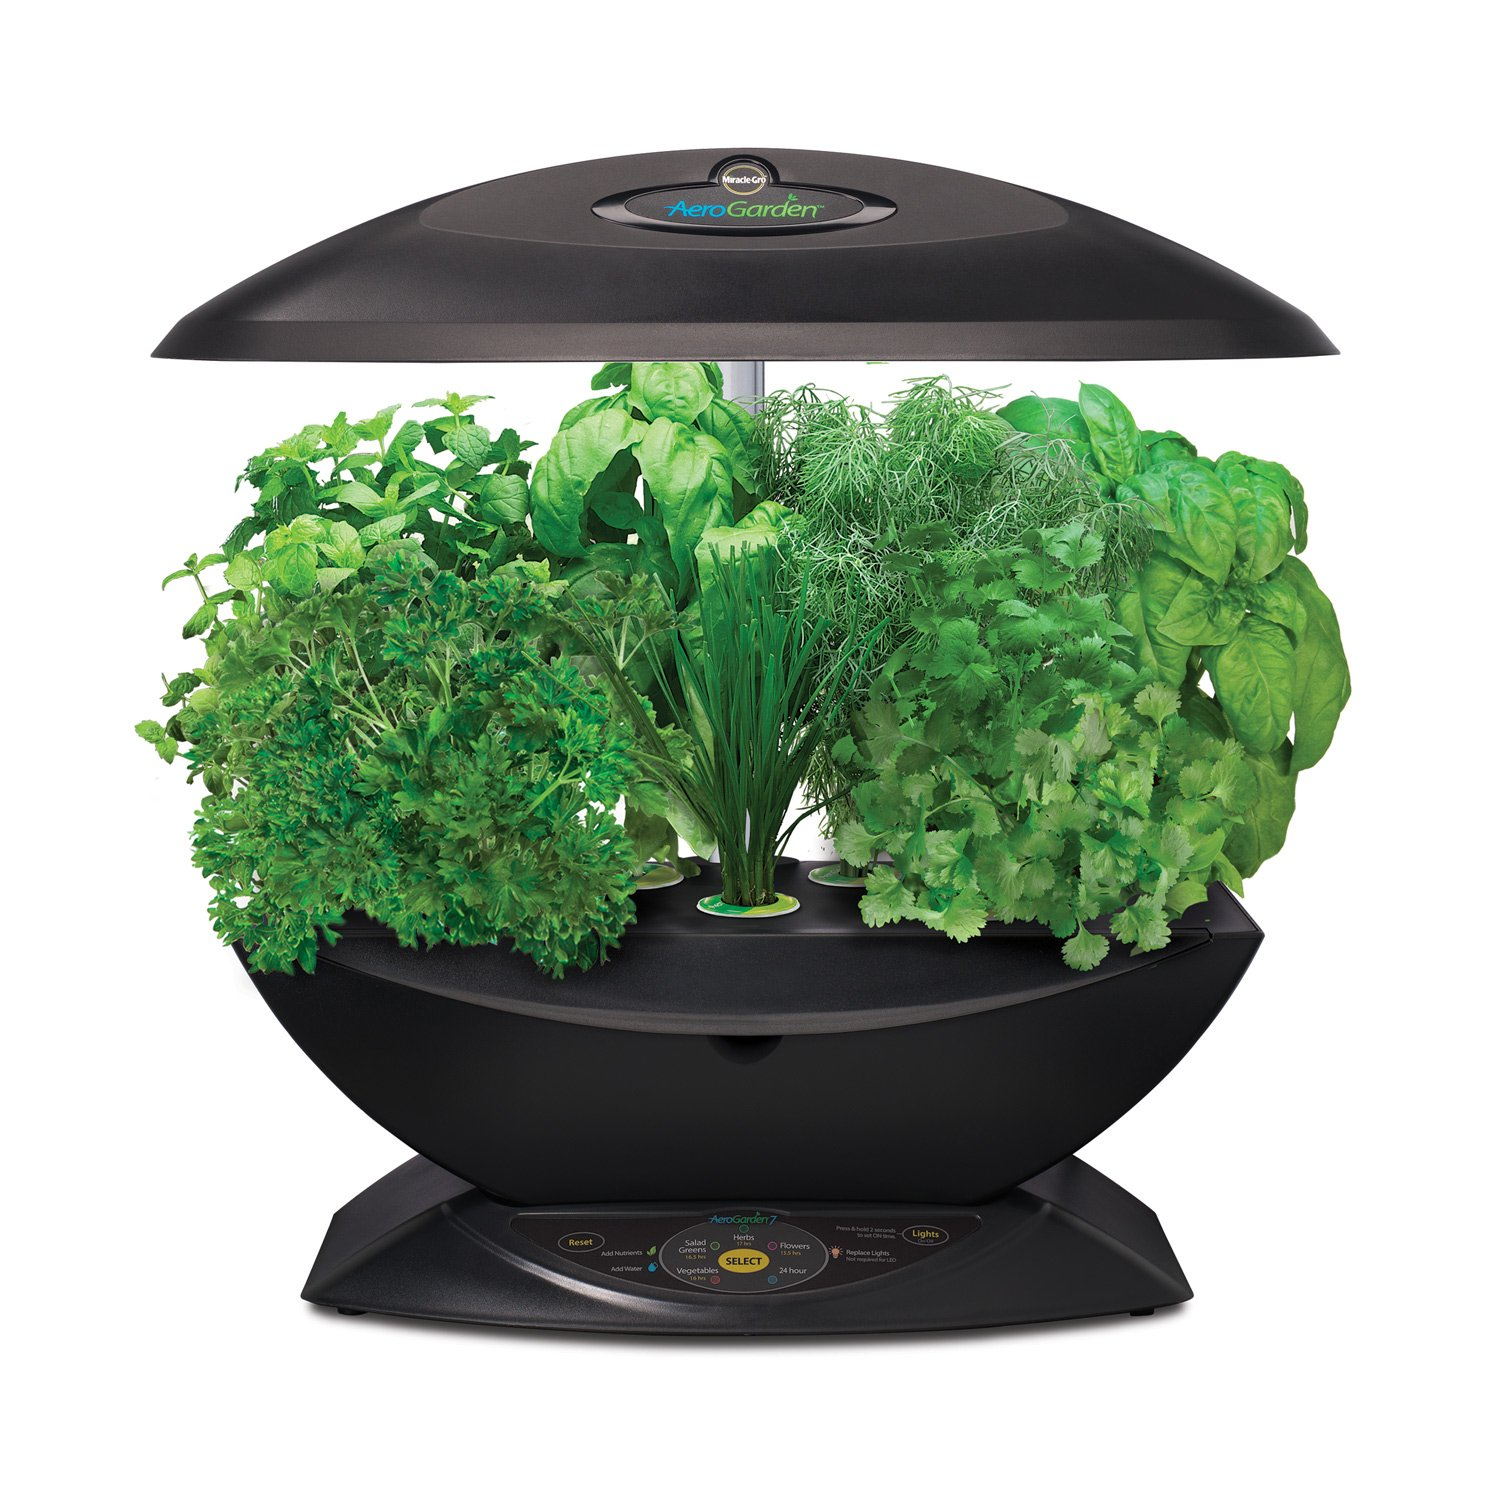 Get an Indoor Hydroponics Garden System and Eat Fresh Food